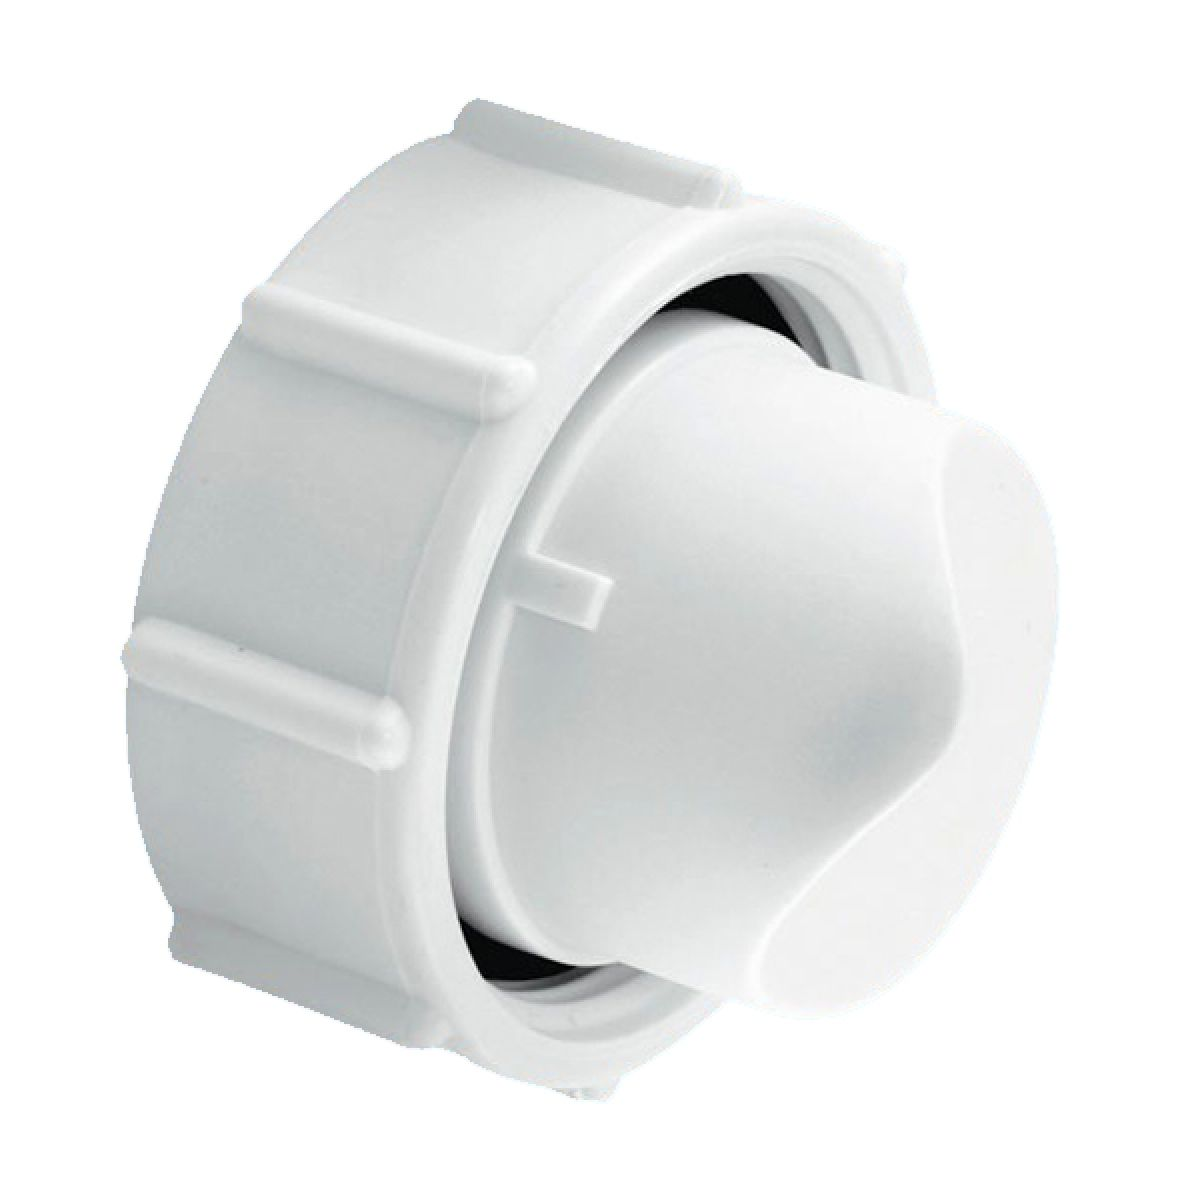 McAlpine SM10 Blank Plug with Nut and Washer